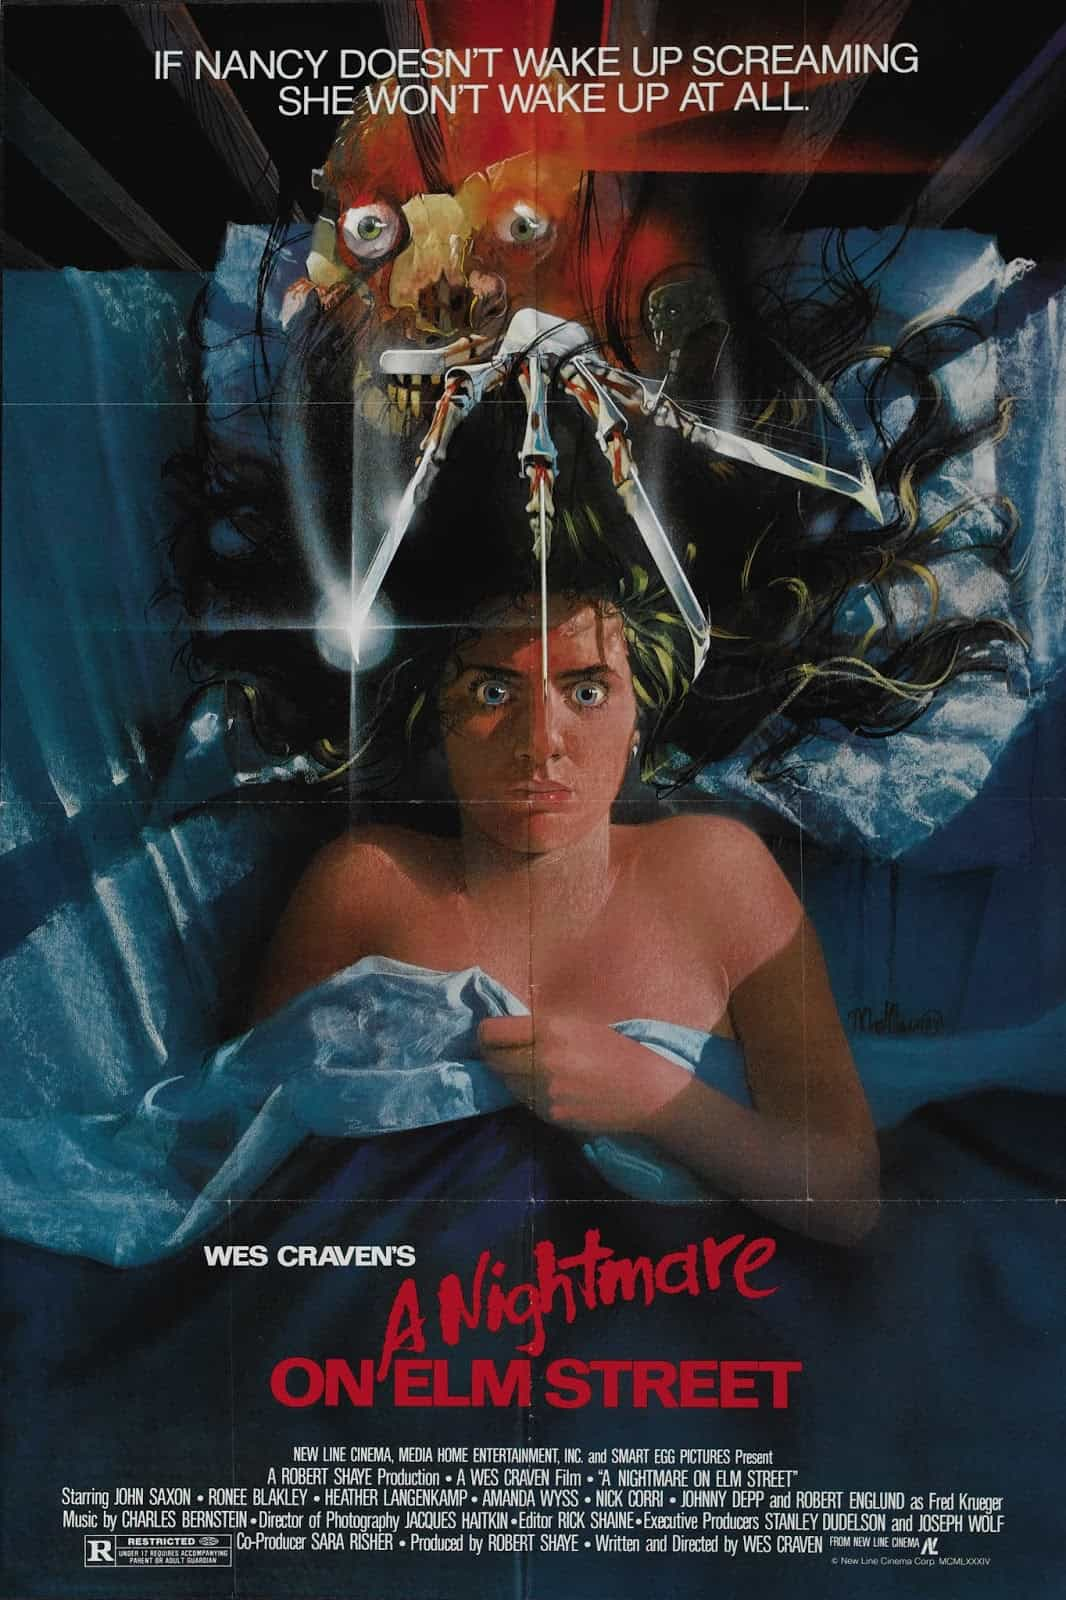 Movie Posters We Love: A Nightmare on Elm Street (1984)